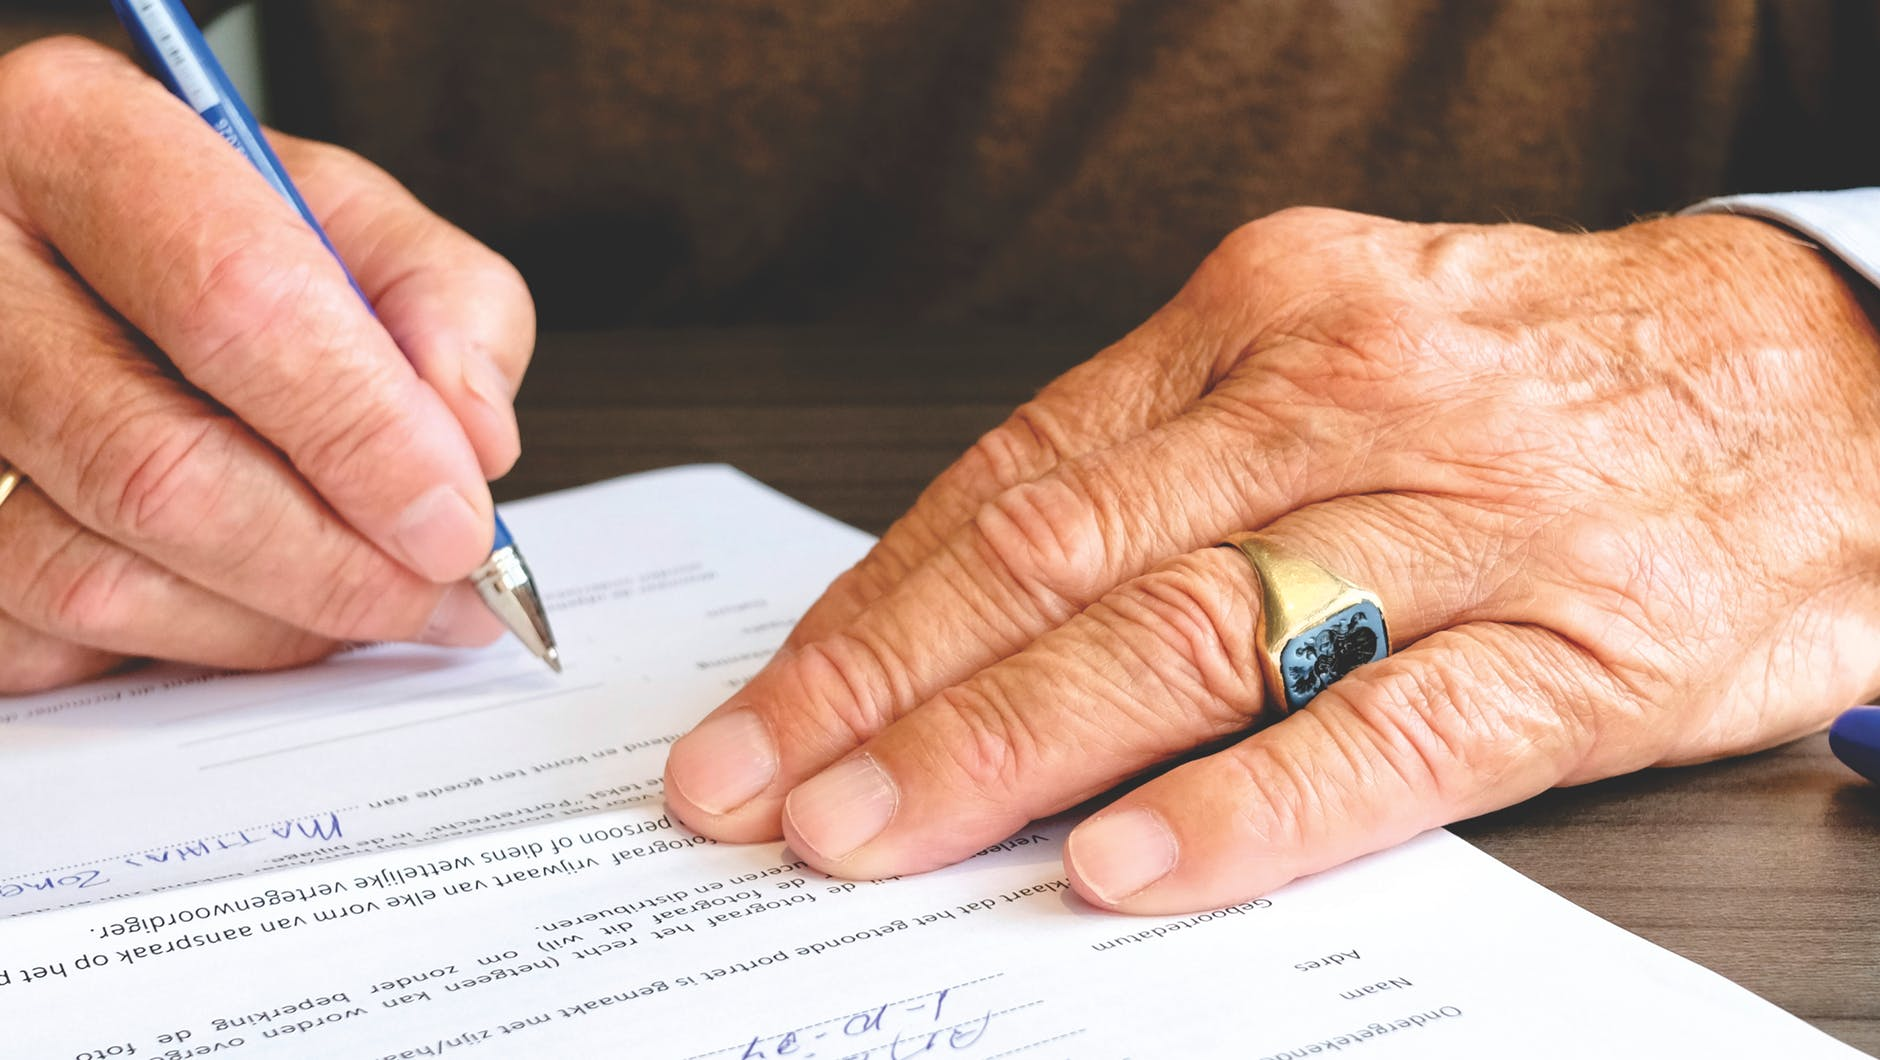 Planning through wills, trusts, advanced medical directives and power of attorney.